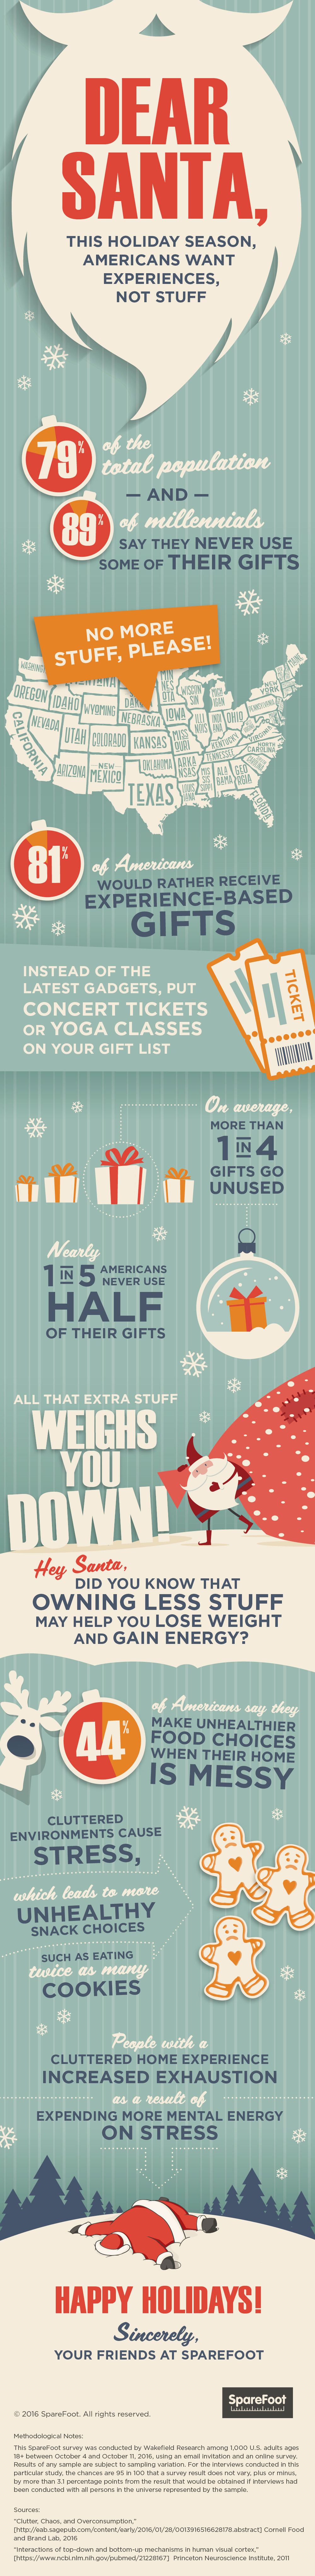 81% of Americans Would Rather Receive Experience-Based Gifts - Guest Post & Infographic from Spare Foot